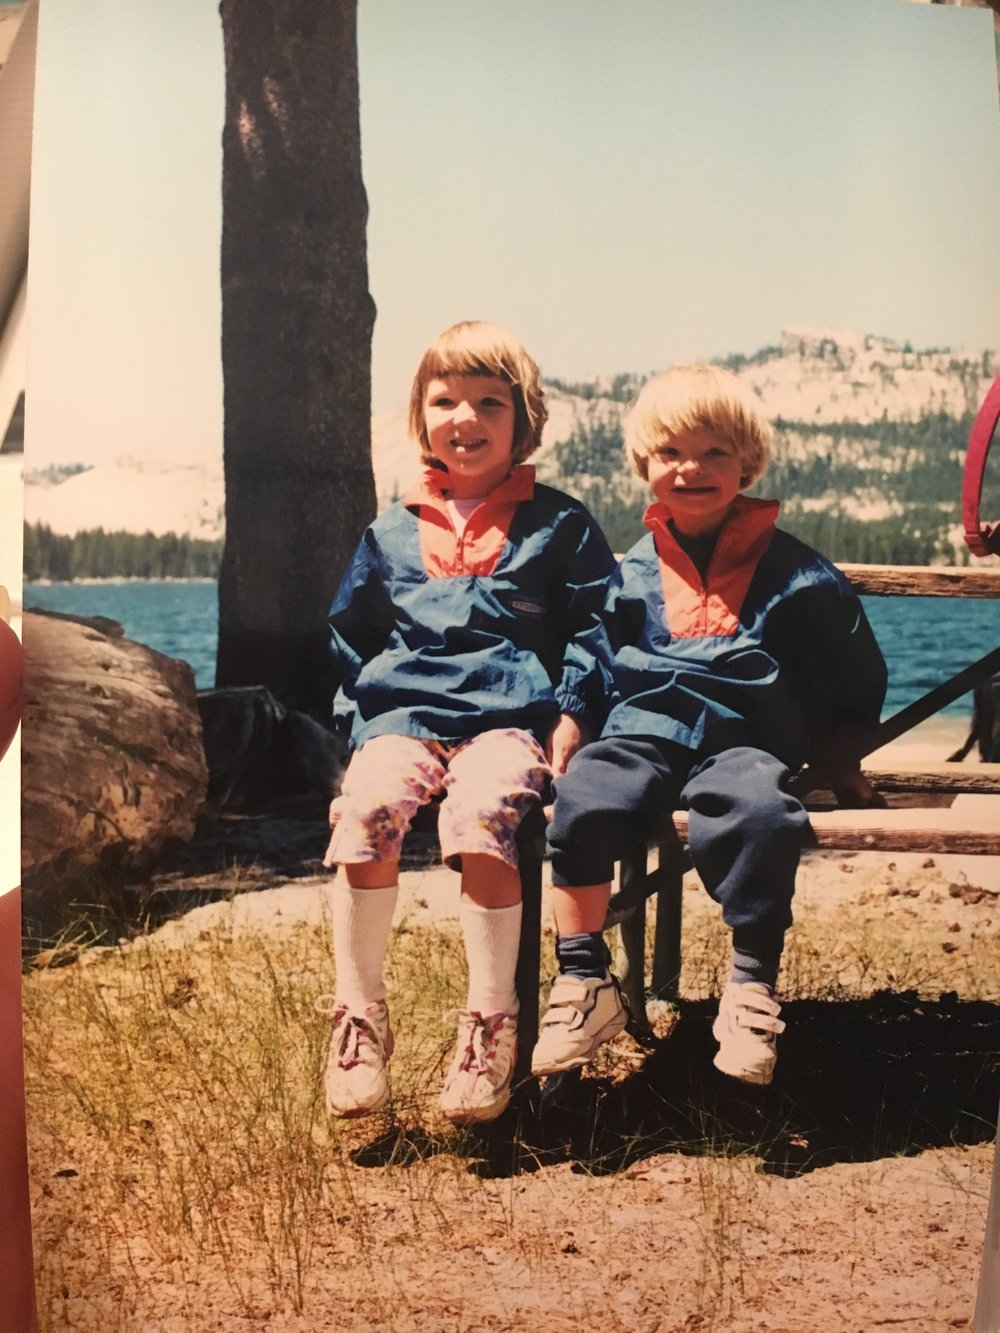 Back from an old trip to Yosemite when we were younger